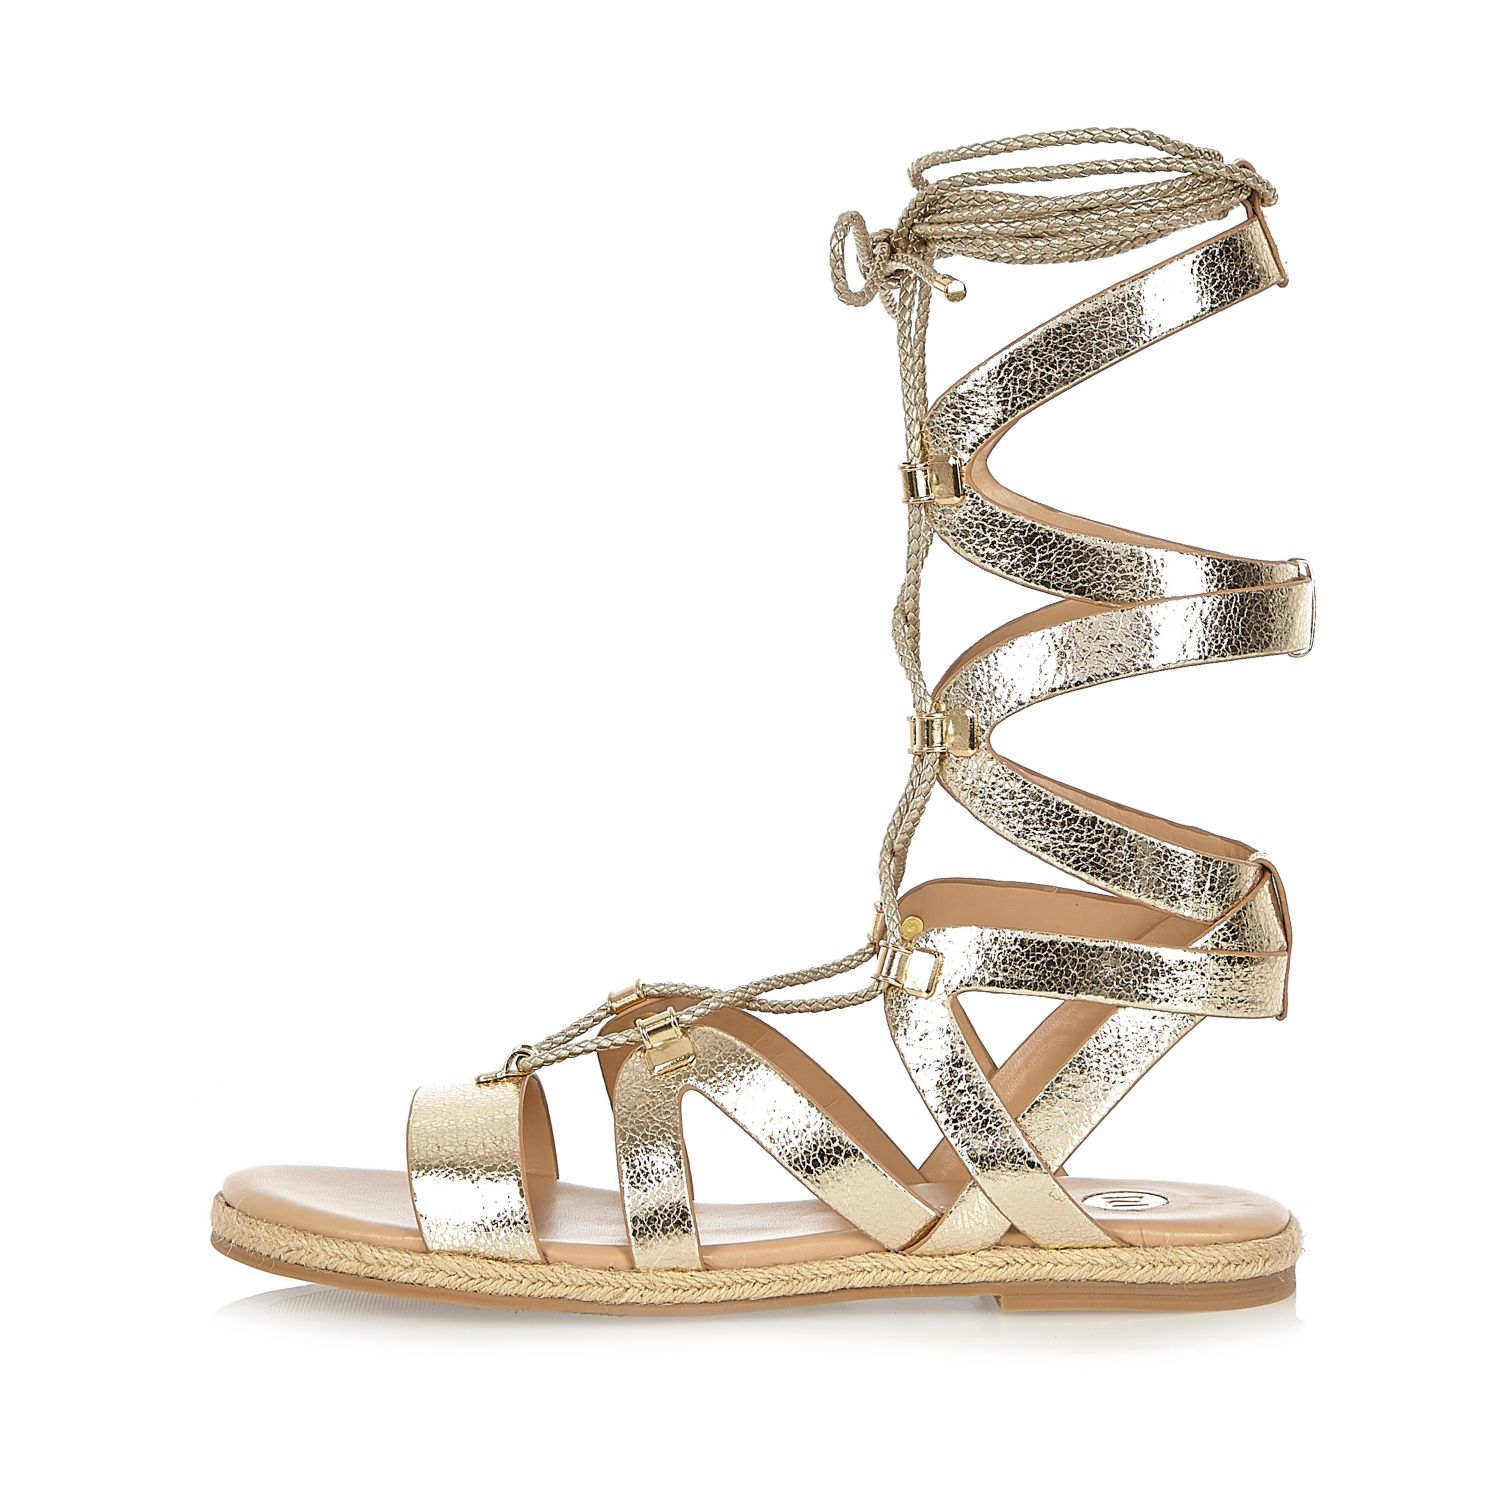 f613640ed099 Gallery. Women s Lace Up Flats Women s Gladiator Sandals Women s Gold  Sandals